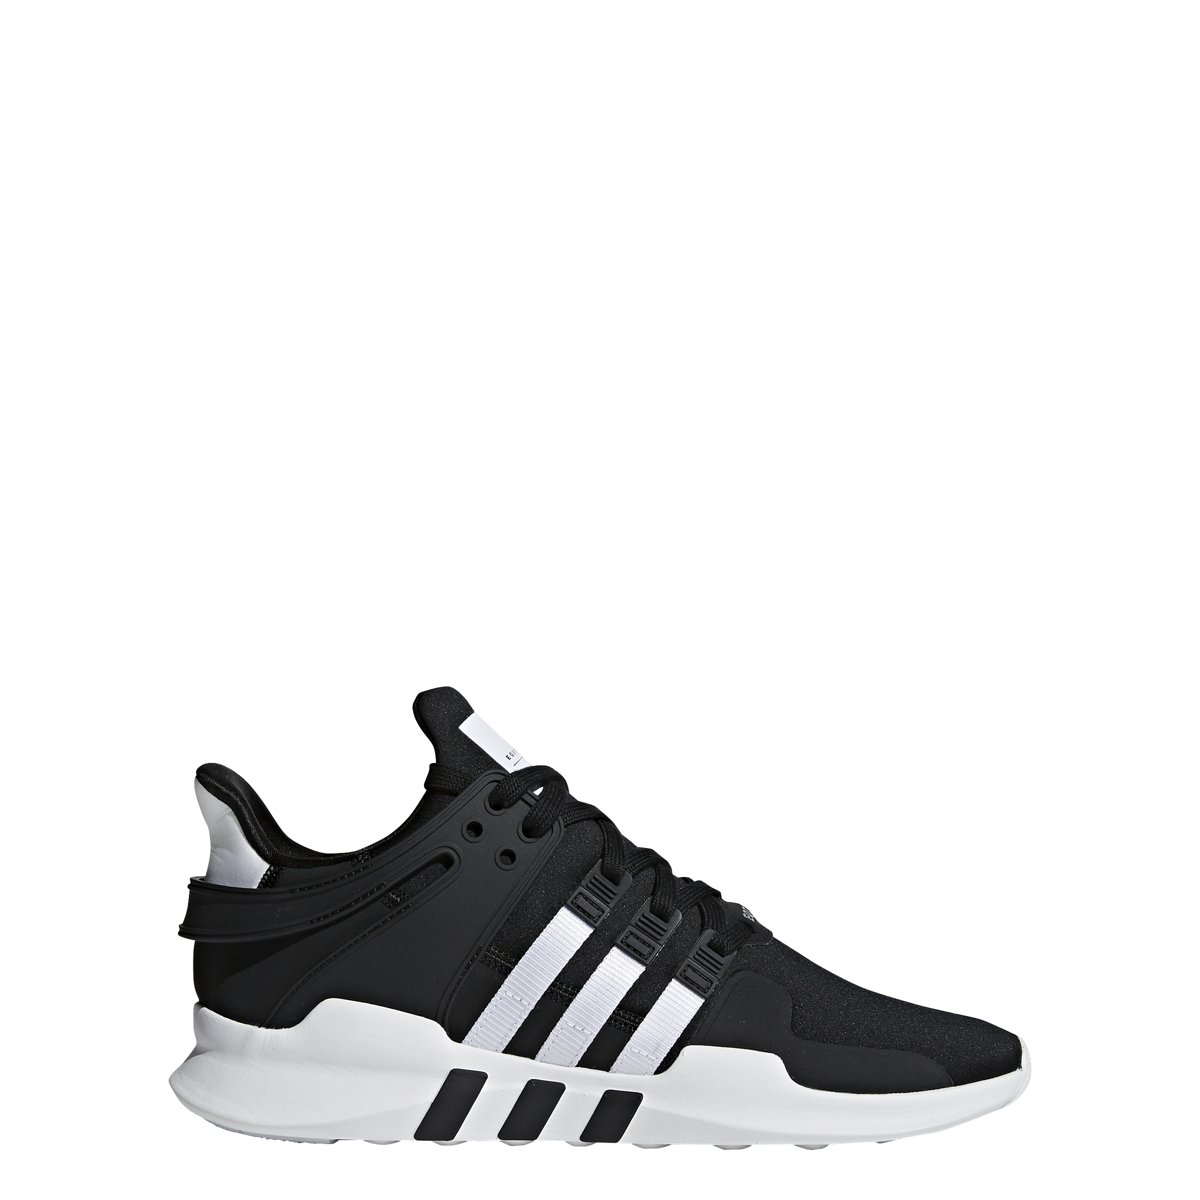 e750bf4b54e8 Galleon - Adidas Men s Eqt Support Adv Fashion Sneaker